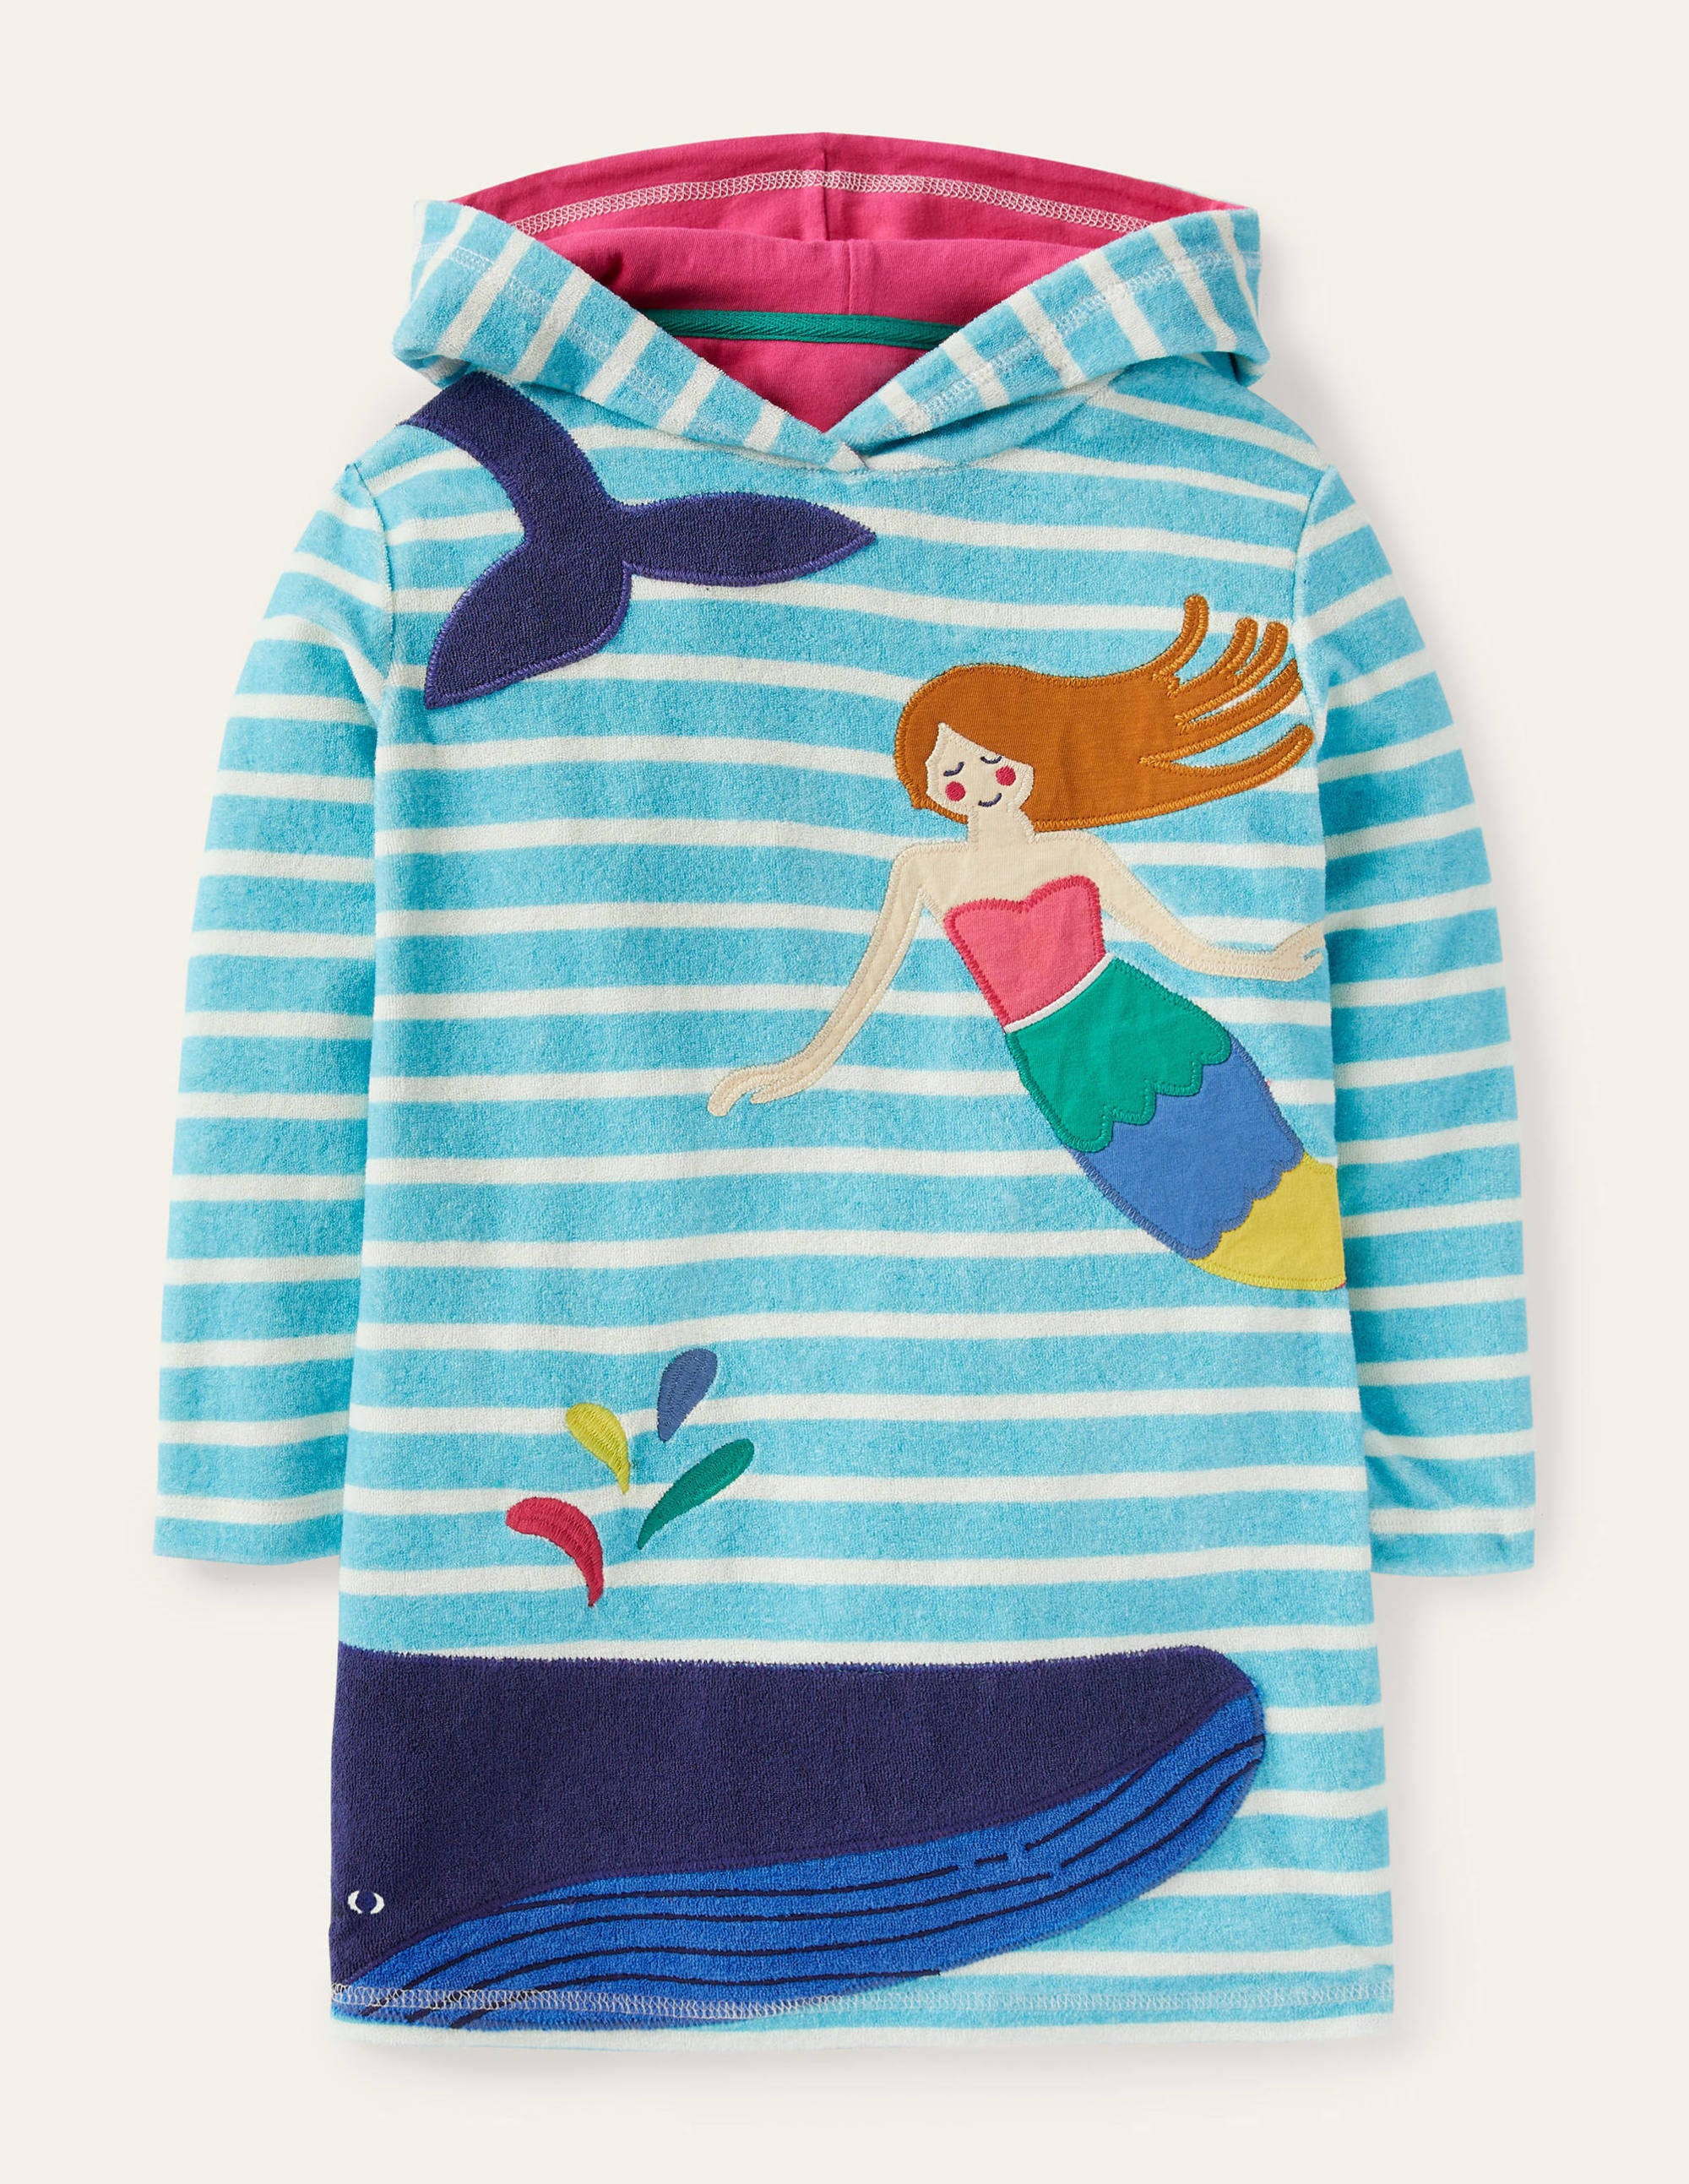 New Untagged Florence and Fred Girls Towelling Hooded Beach Shorts Suit Ages 2-5